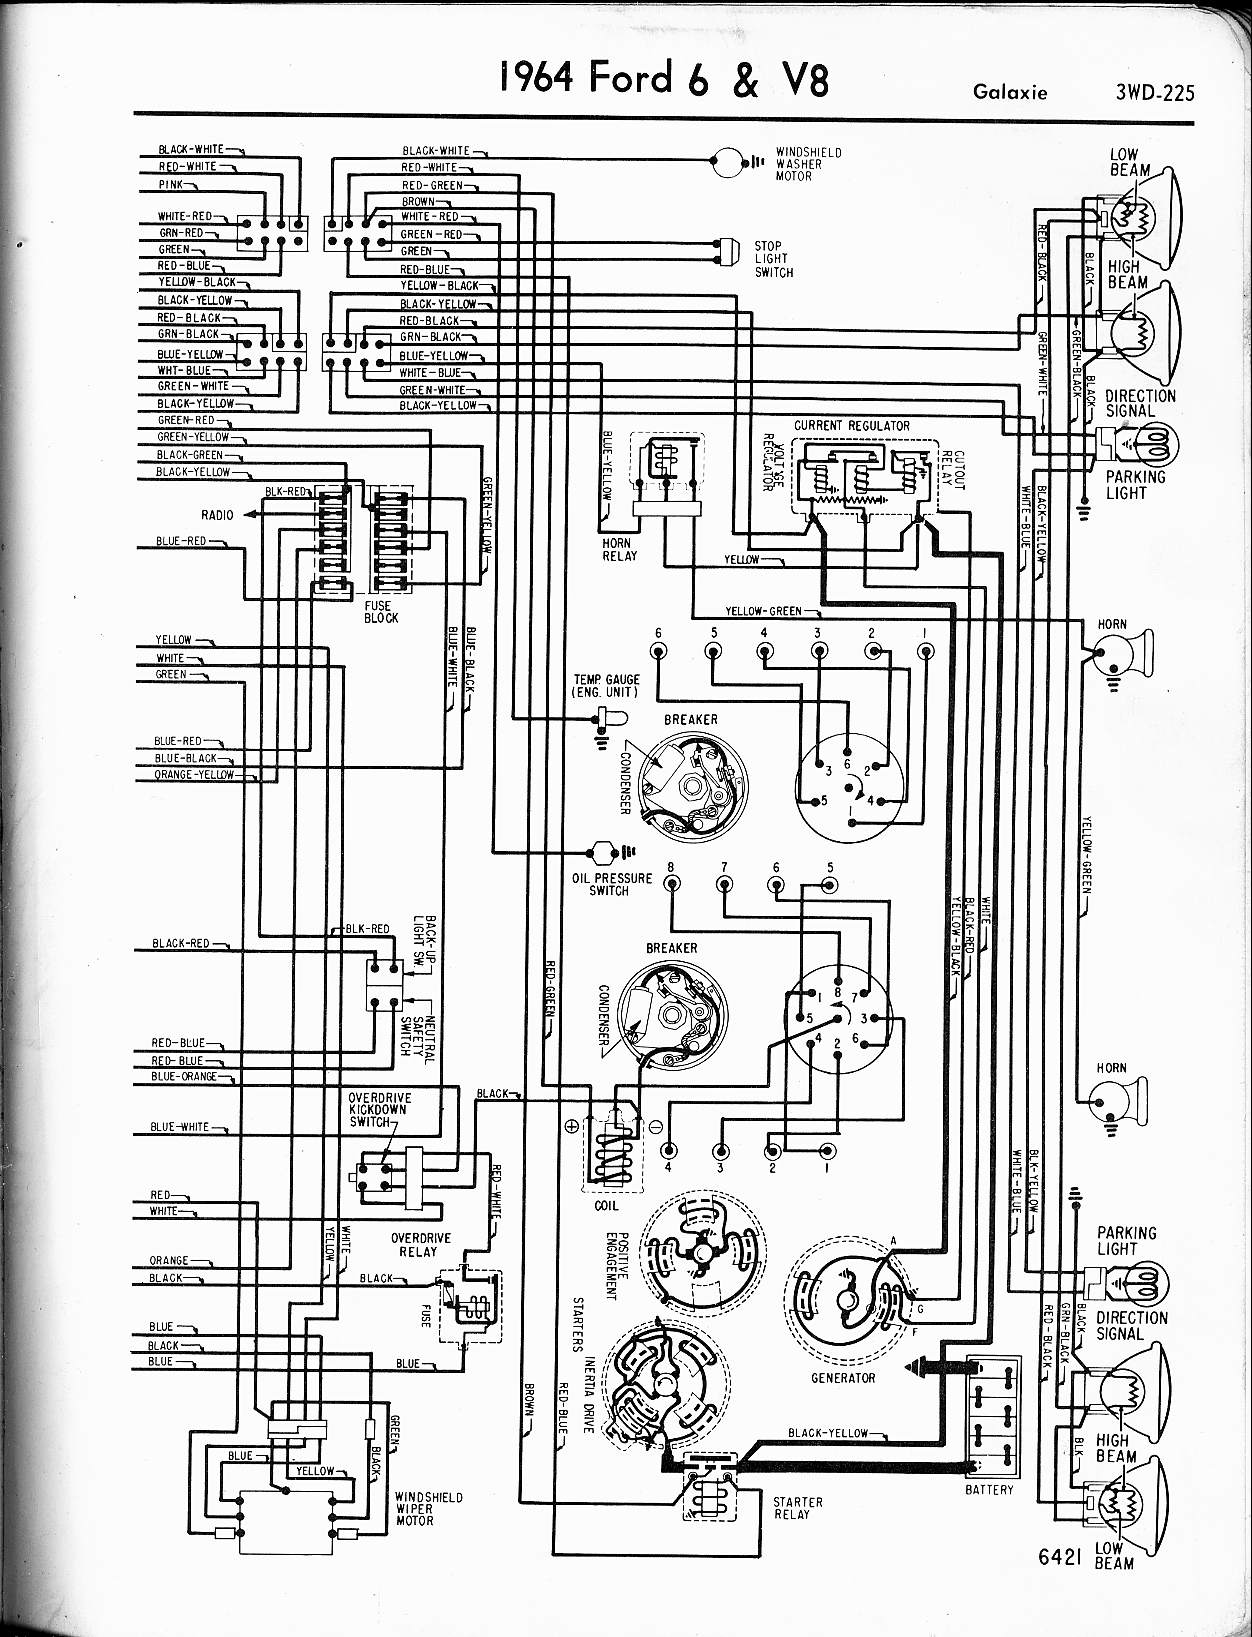 WRG-9165] 900 Ford Tractor Wiring Diagram